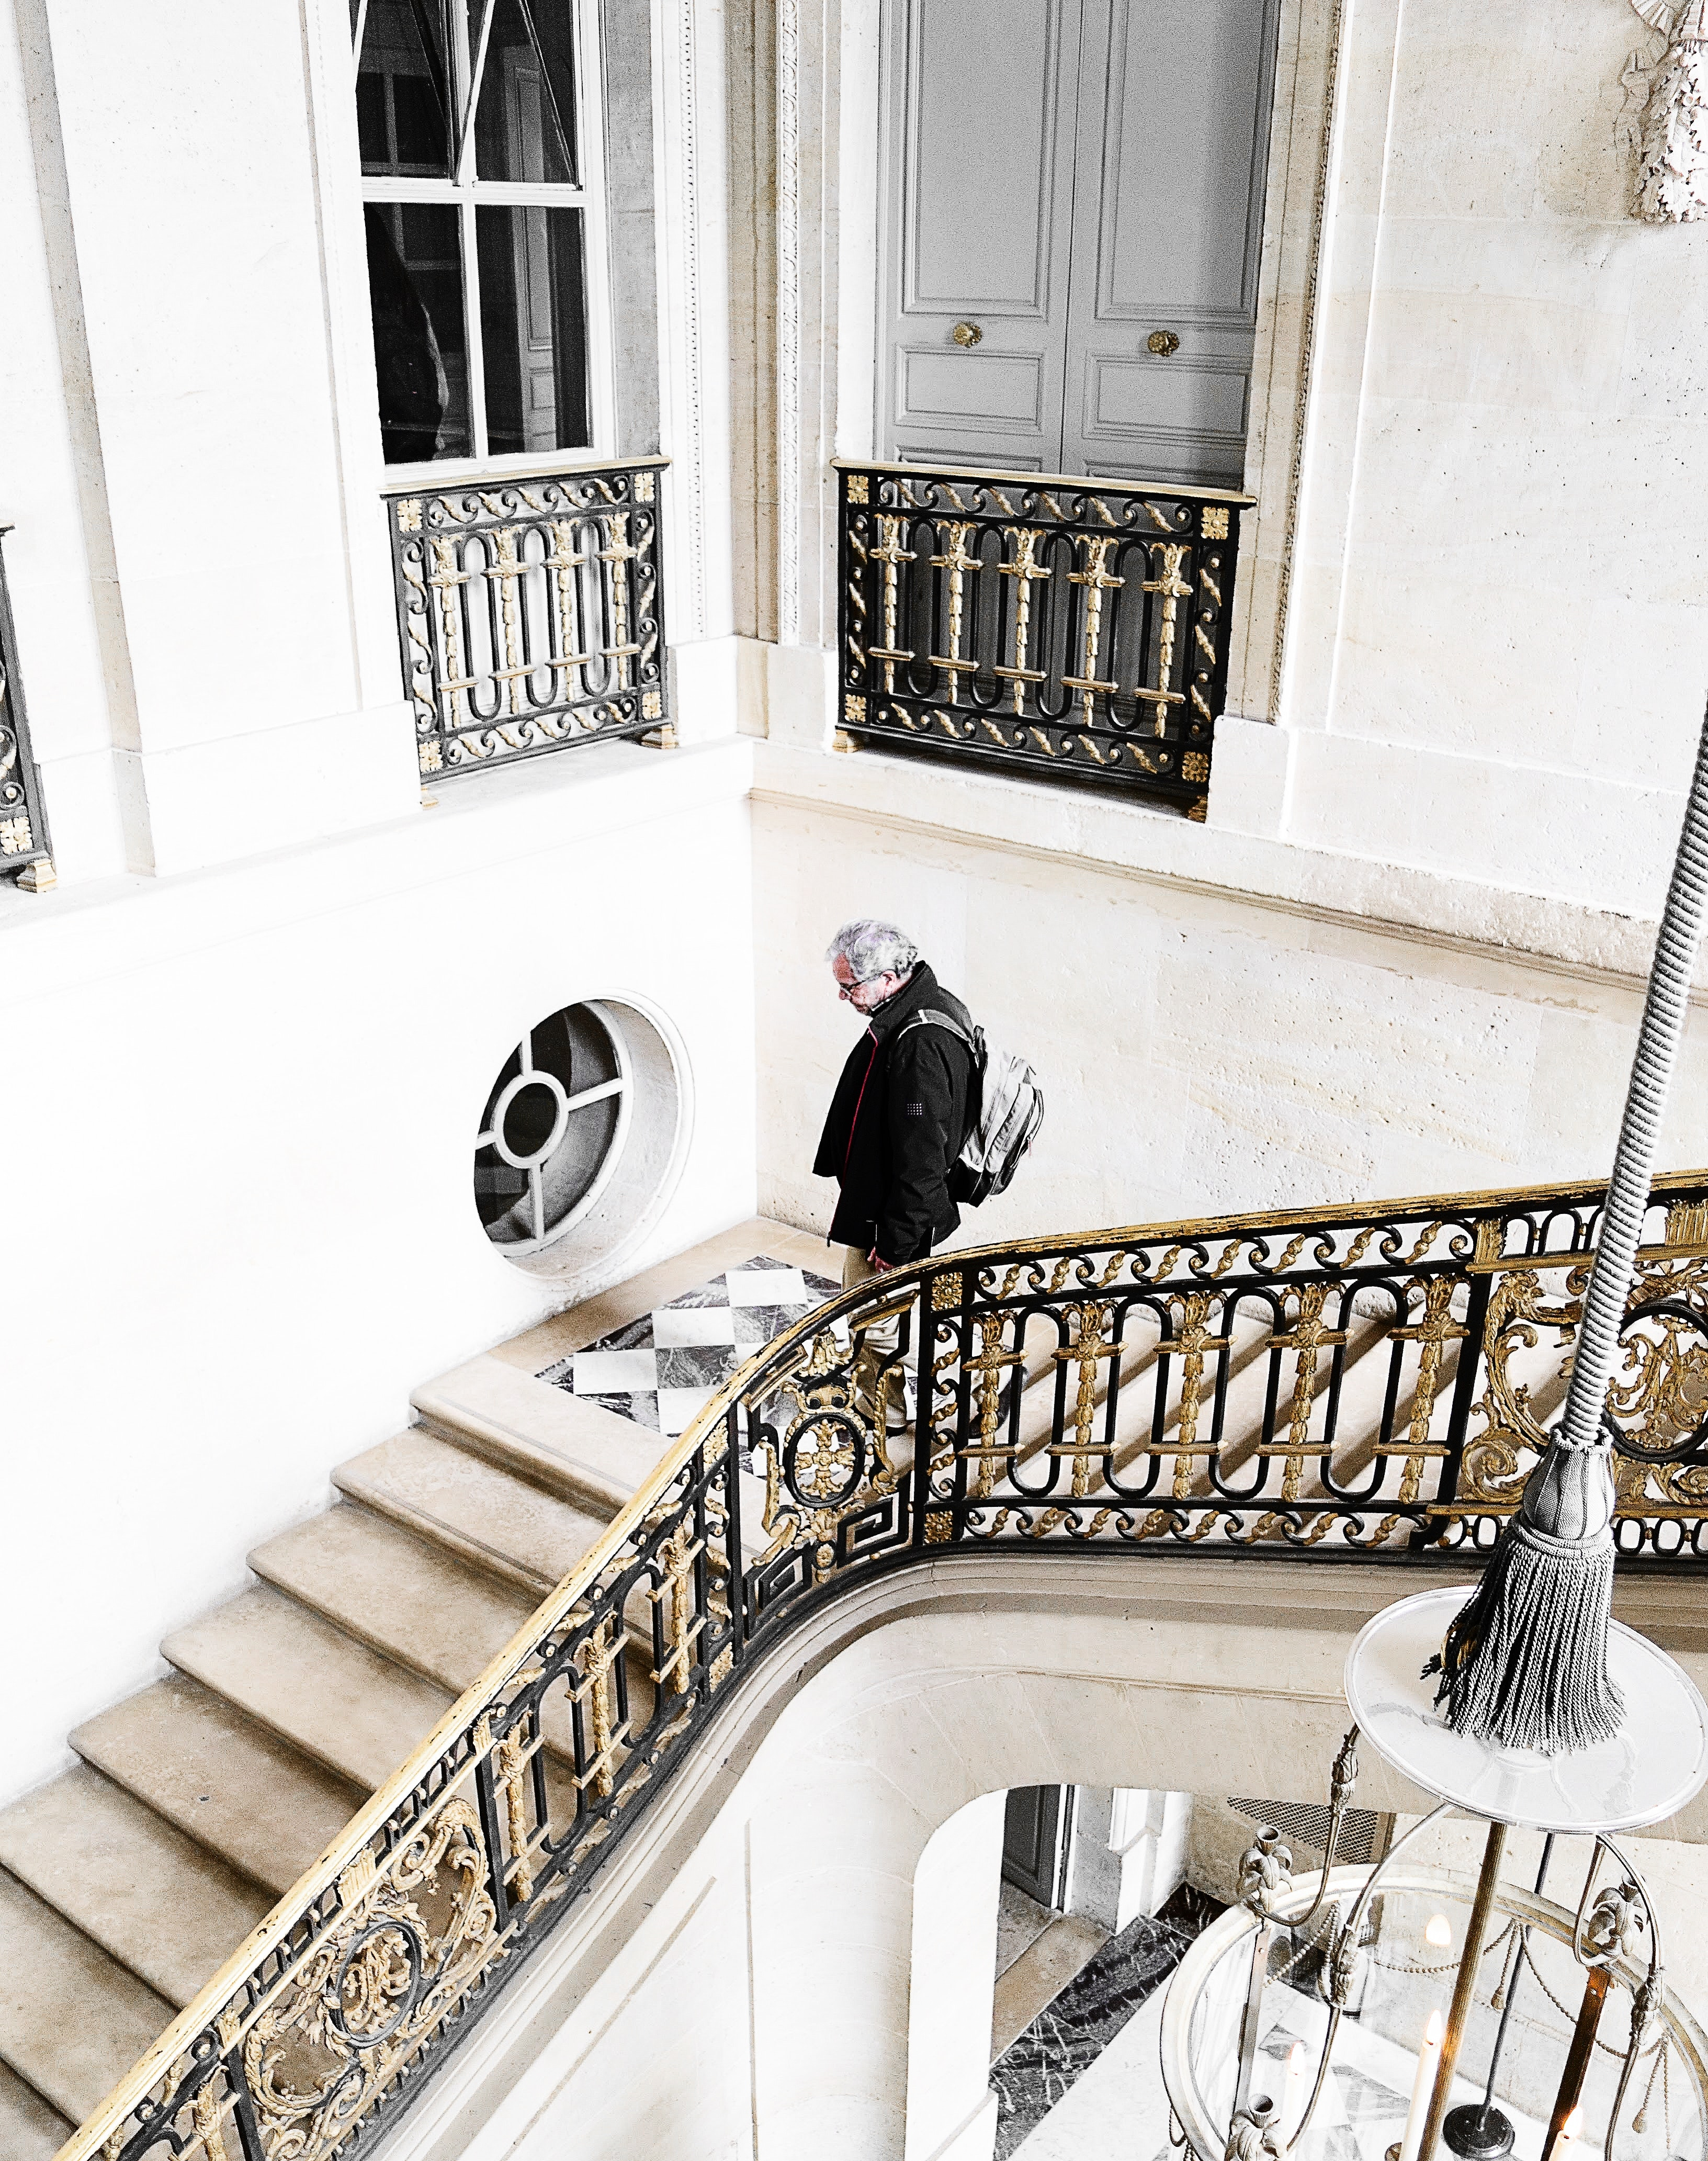 Man on stairs photo